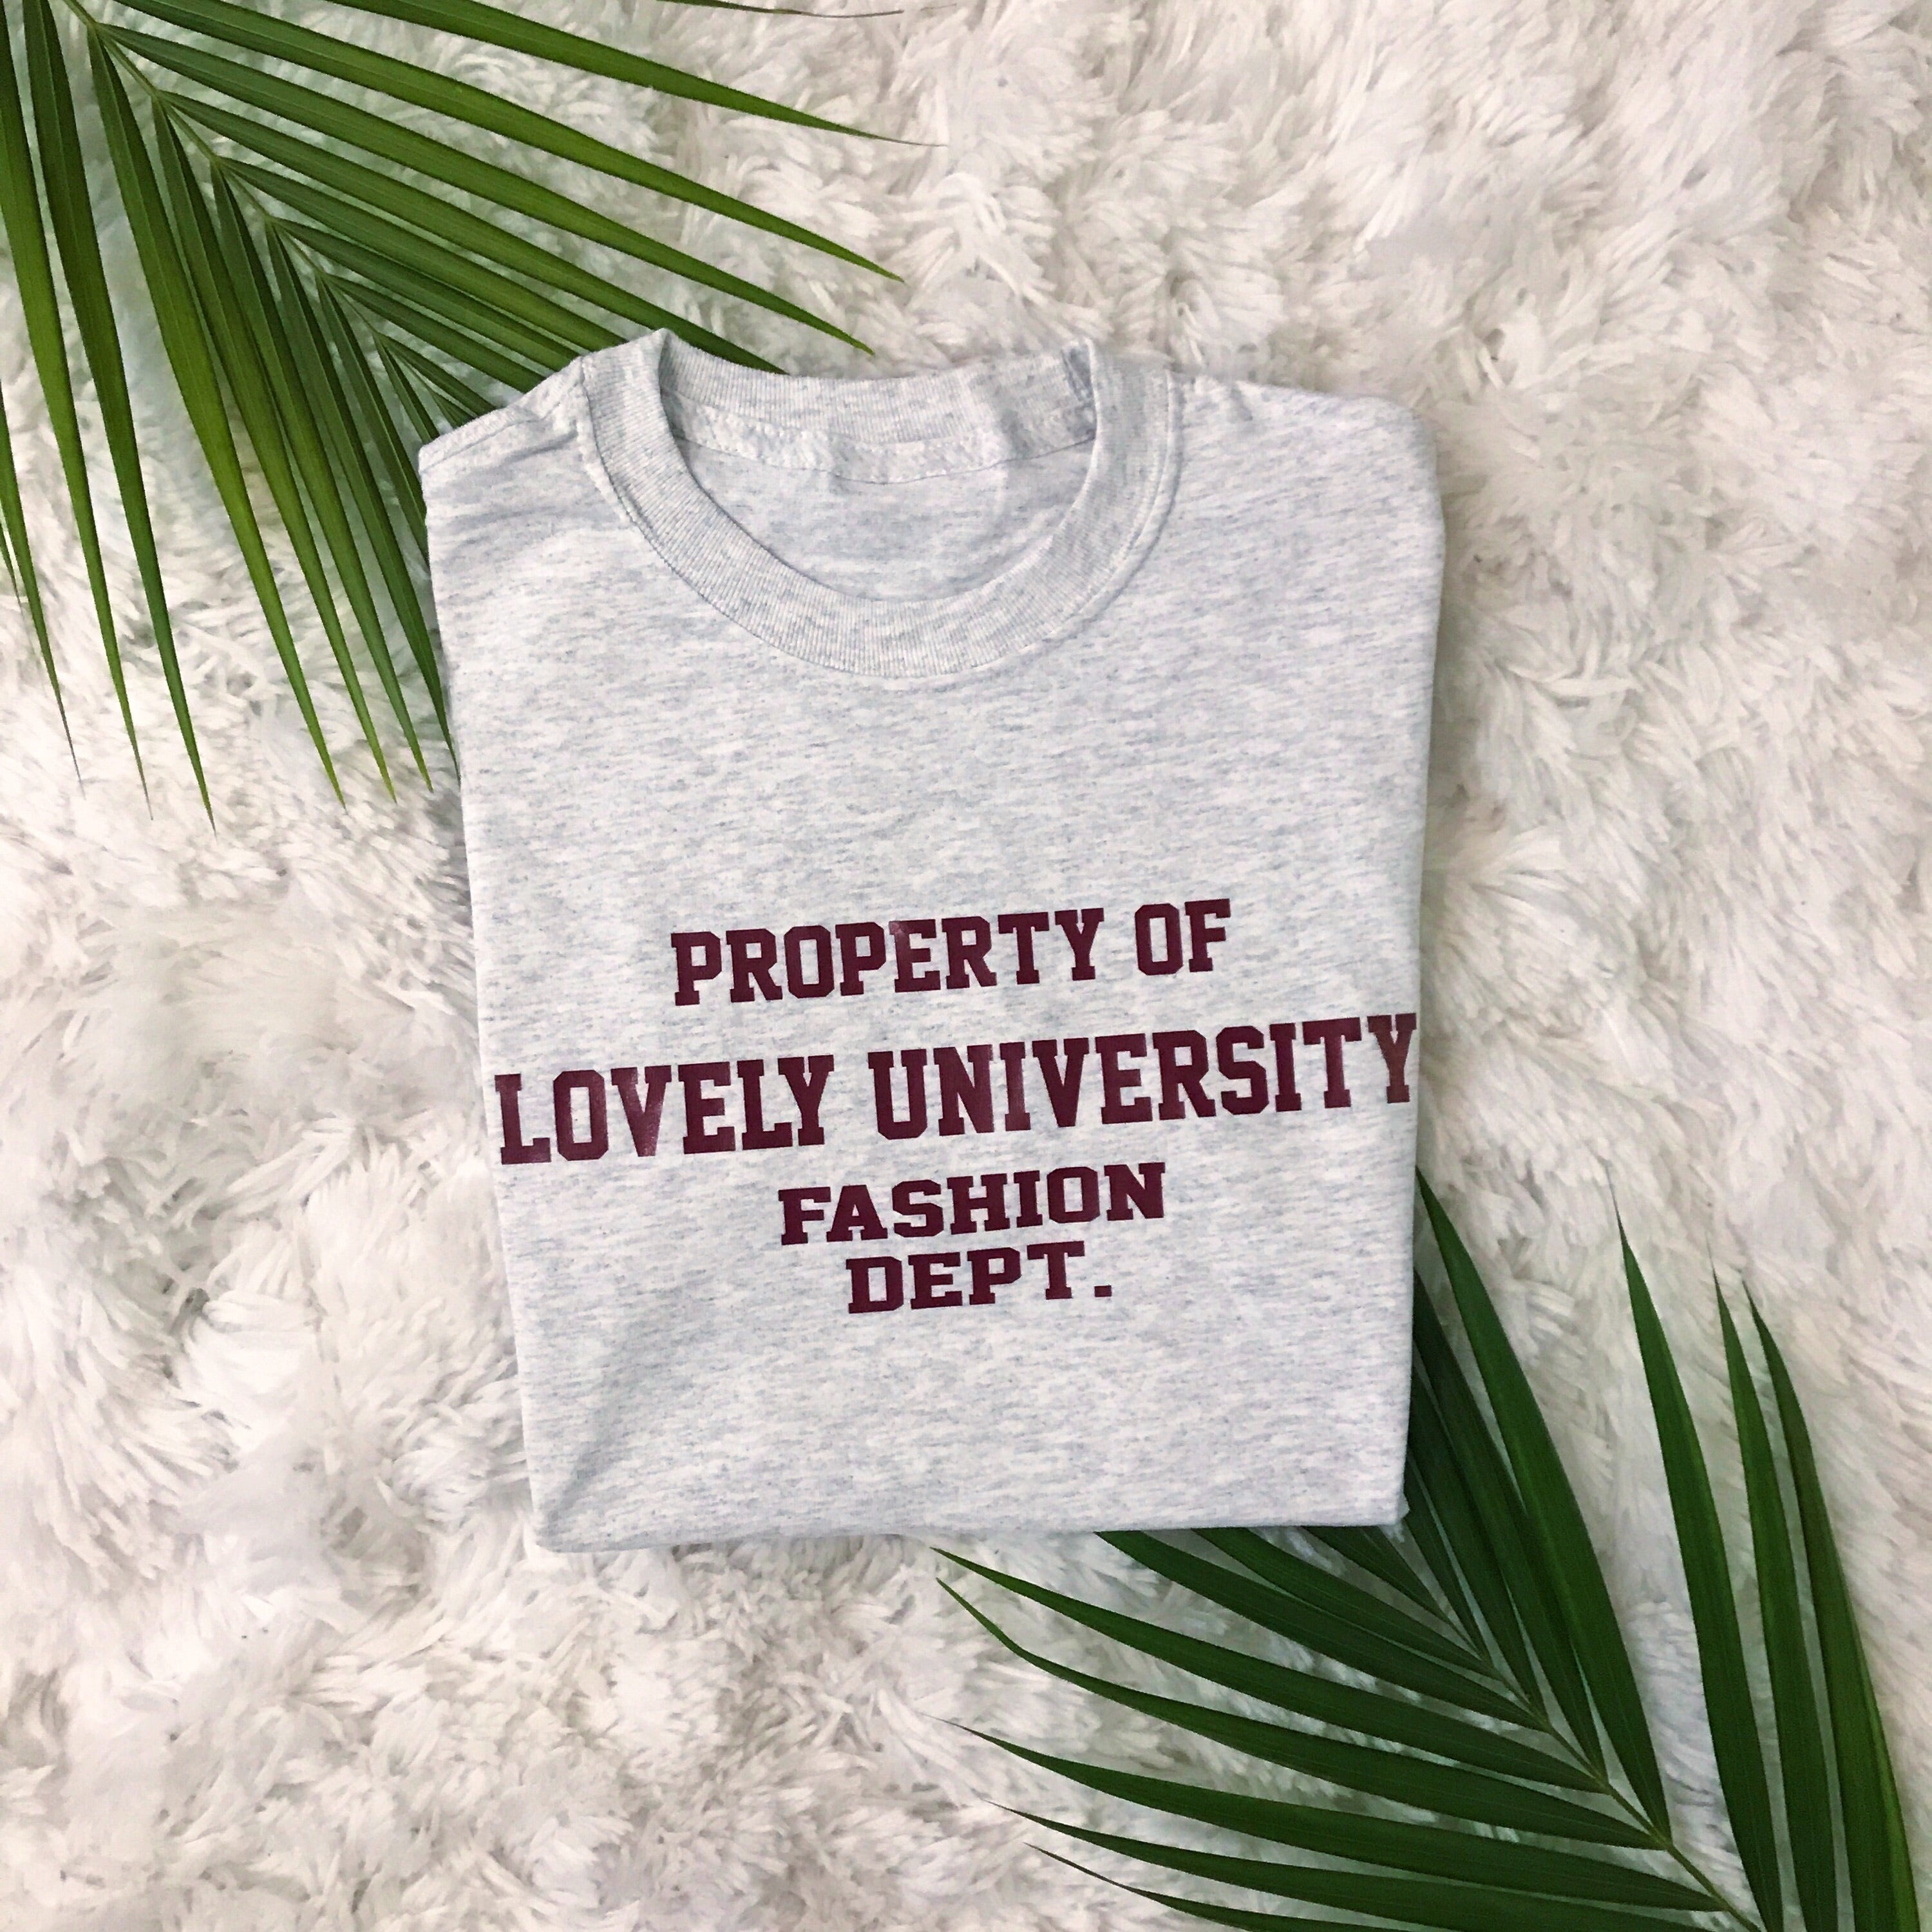 Property of | T-Shirt